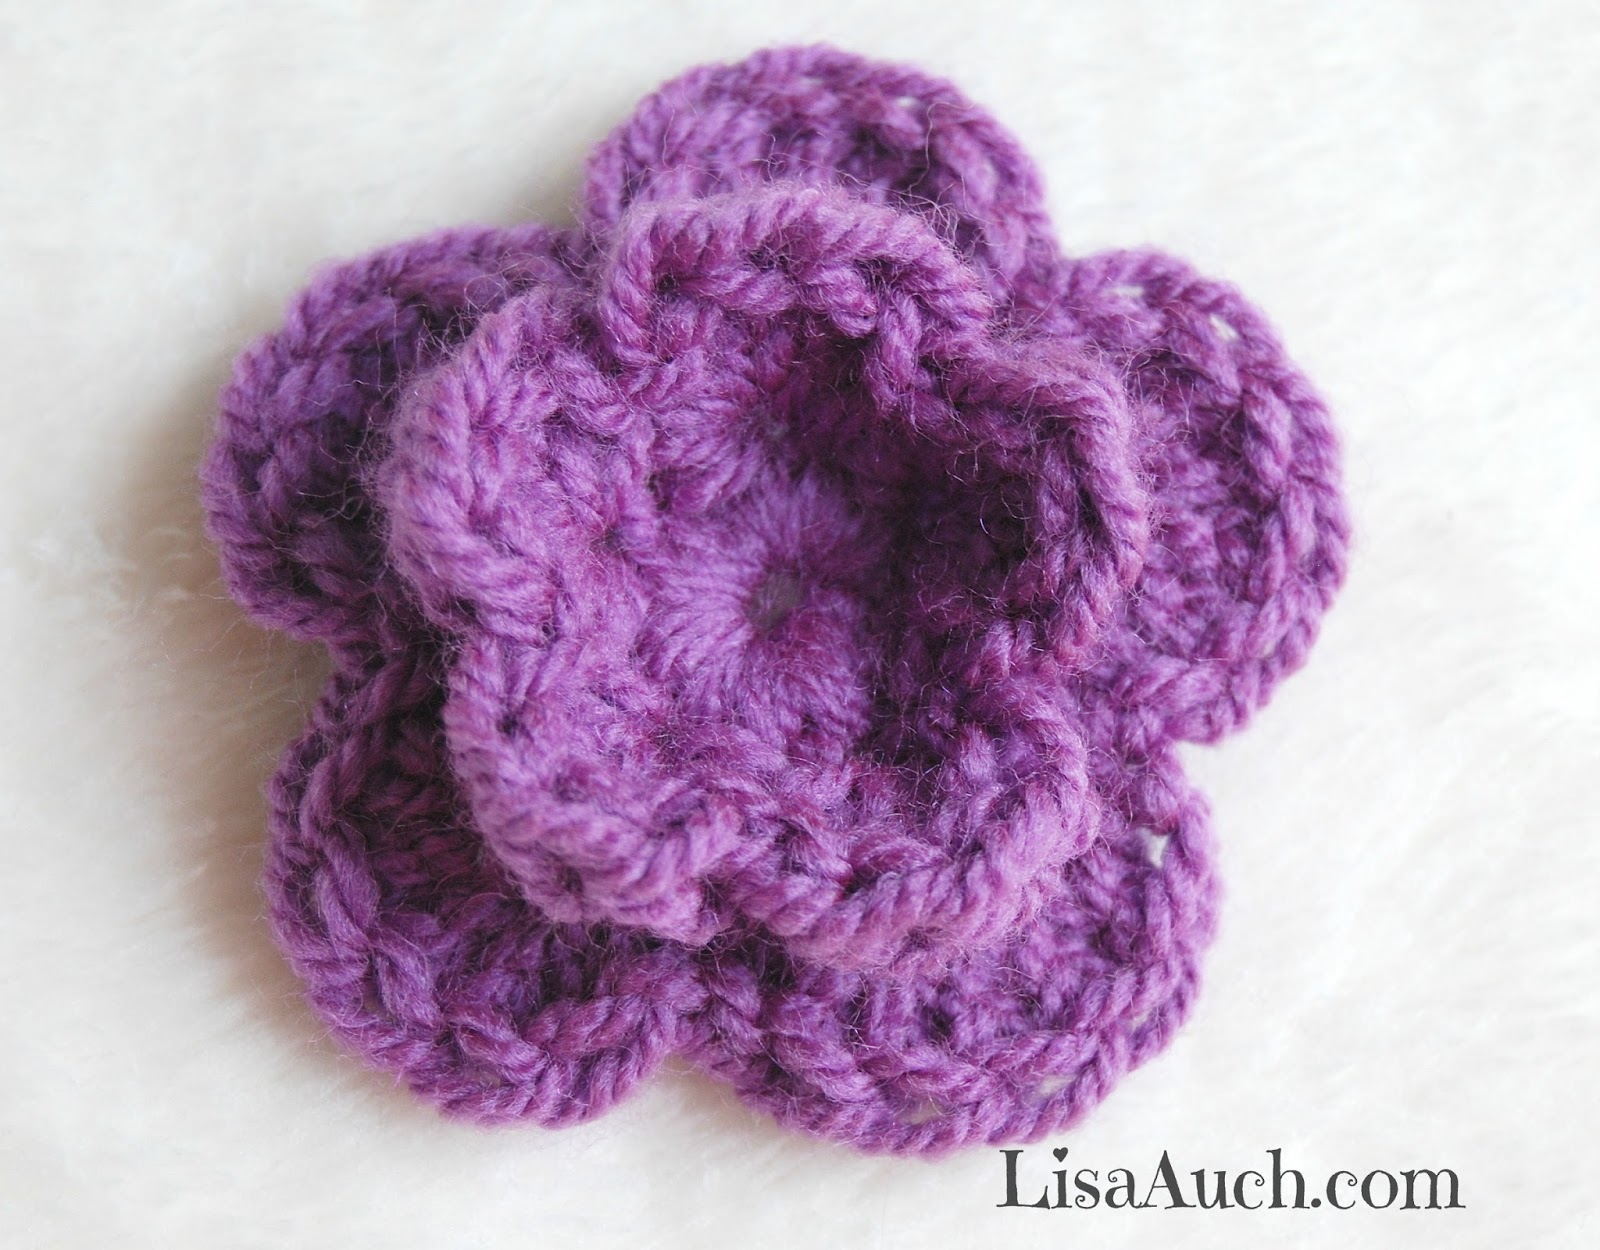 How To Crochet a Small Double Layer 3d Flower in 8 Easy ...